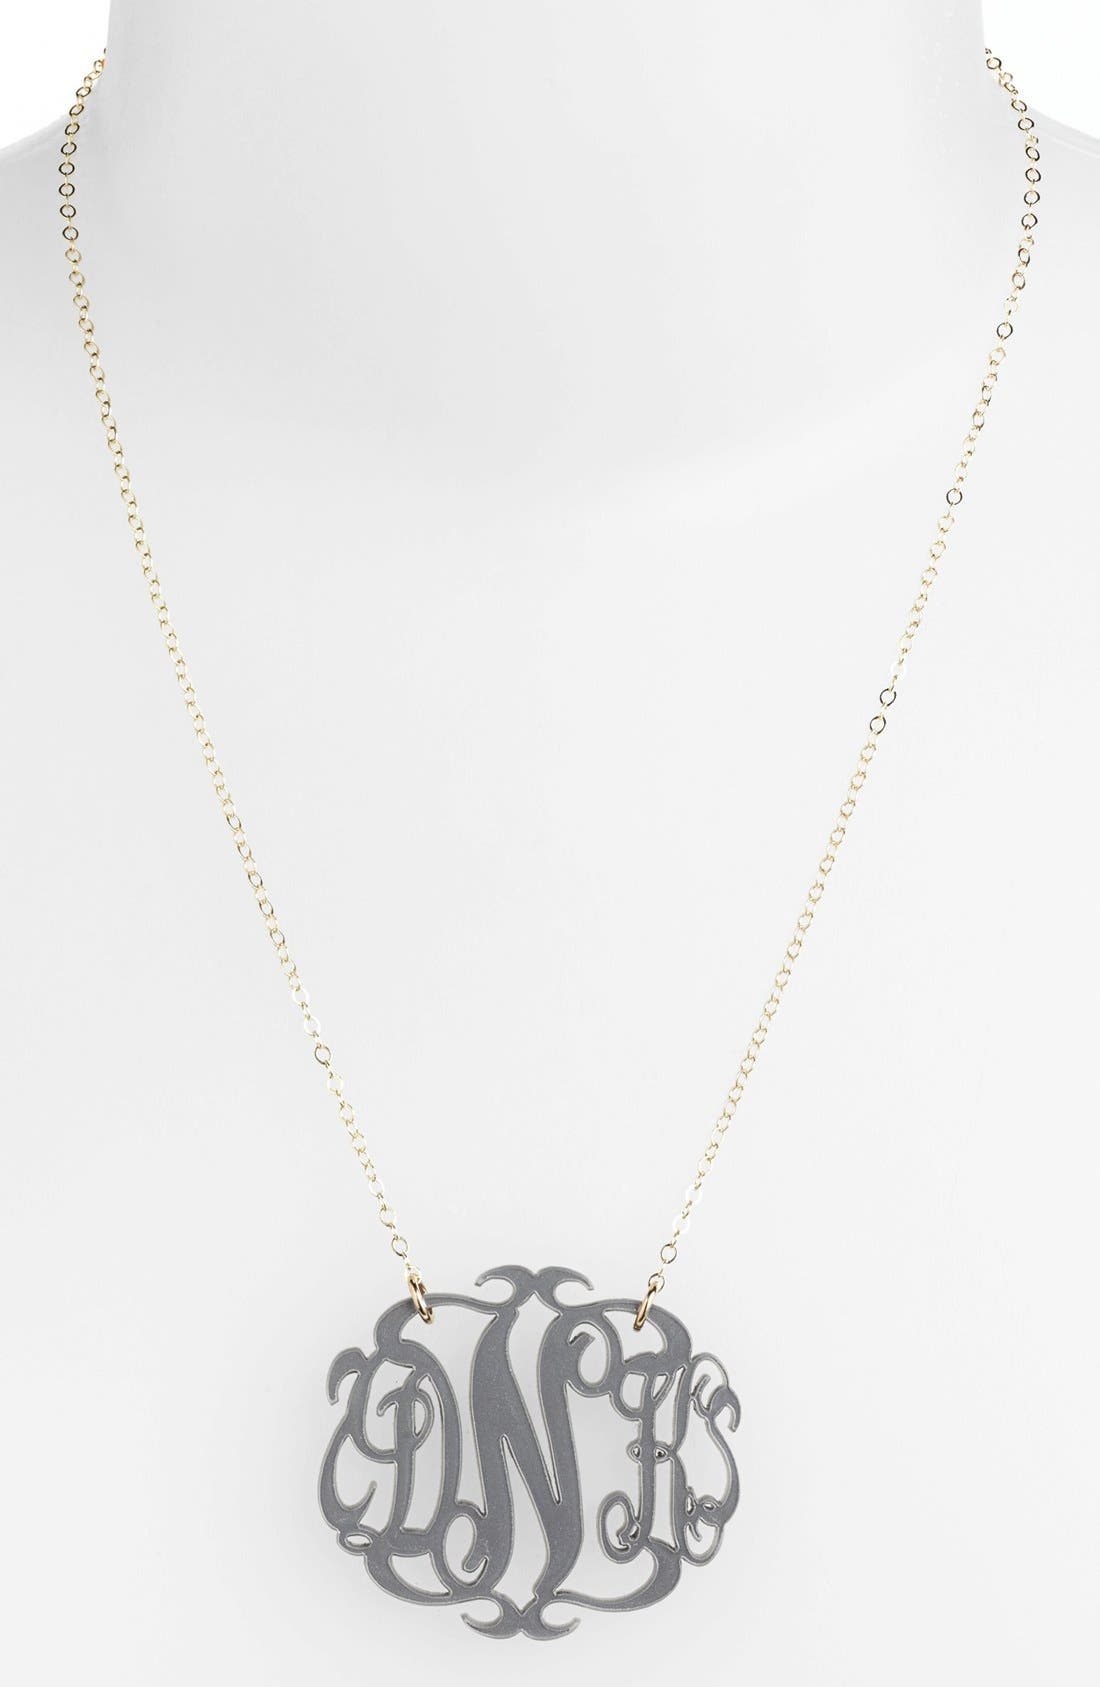 moon and lola large oval personalized monogram pendant necklace  nordstrom exclusive